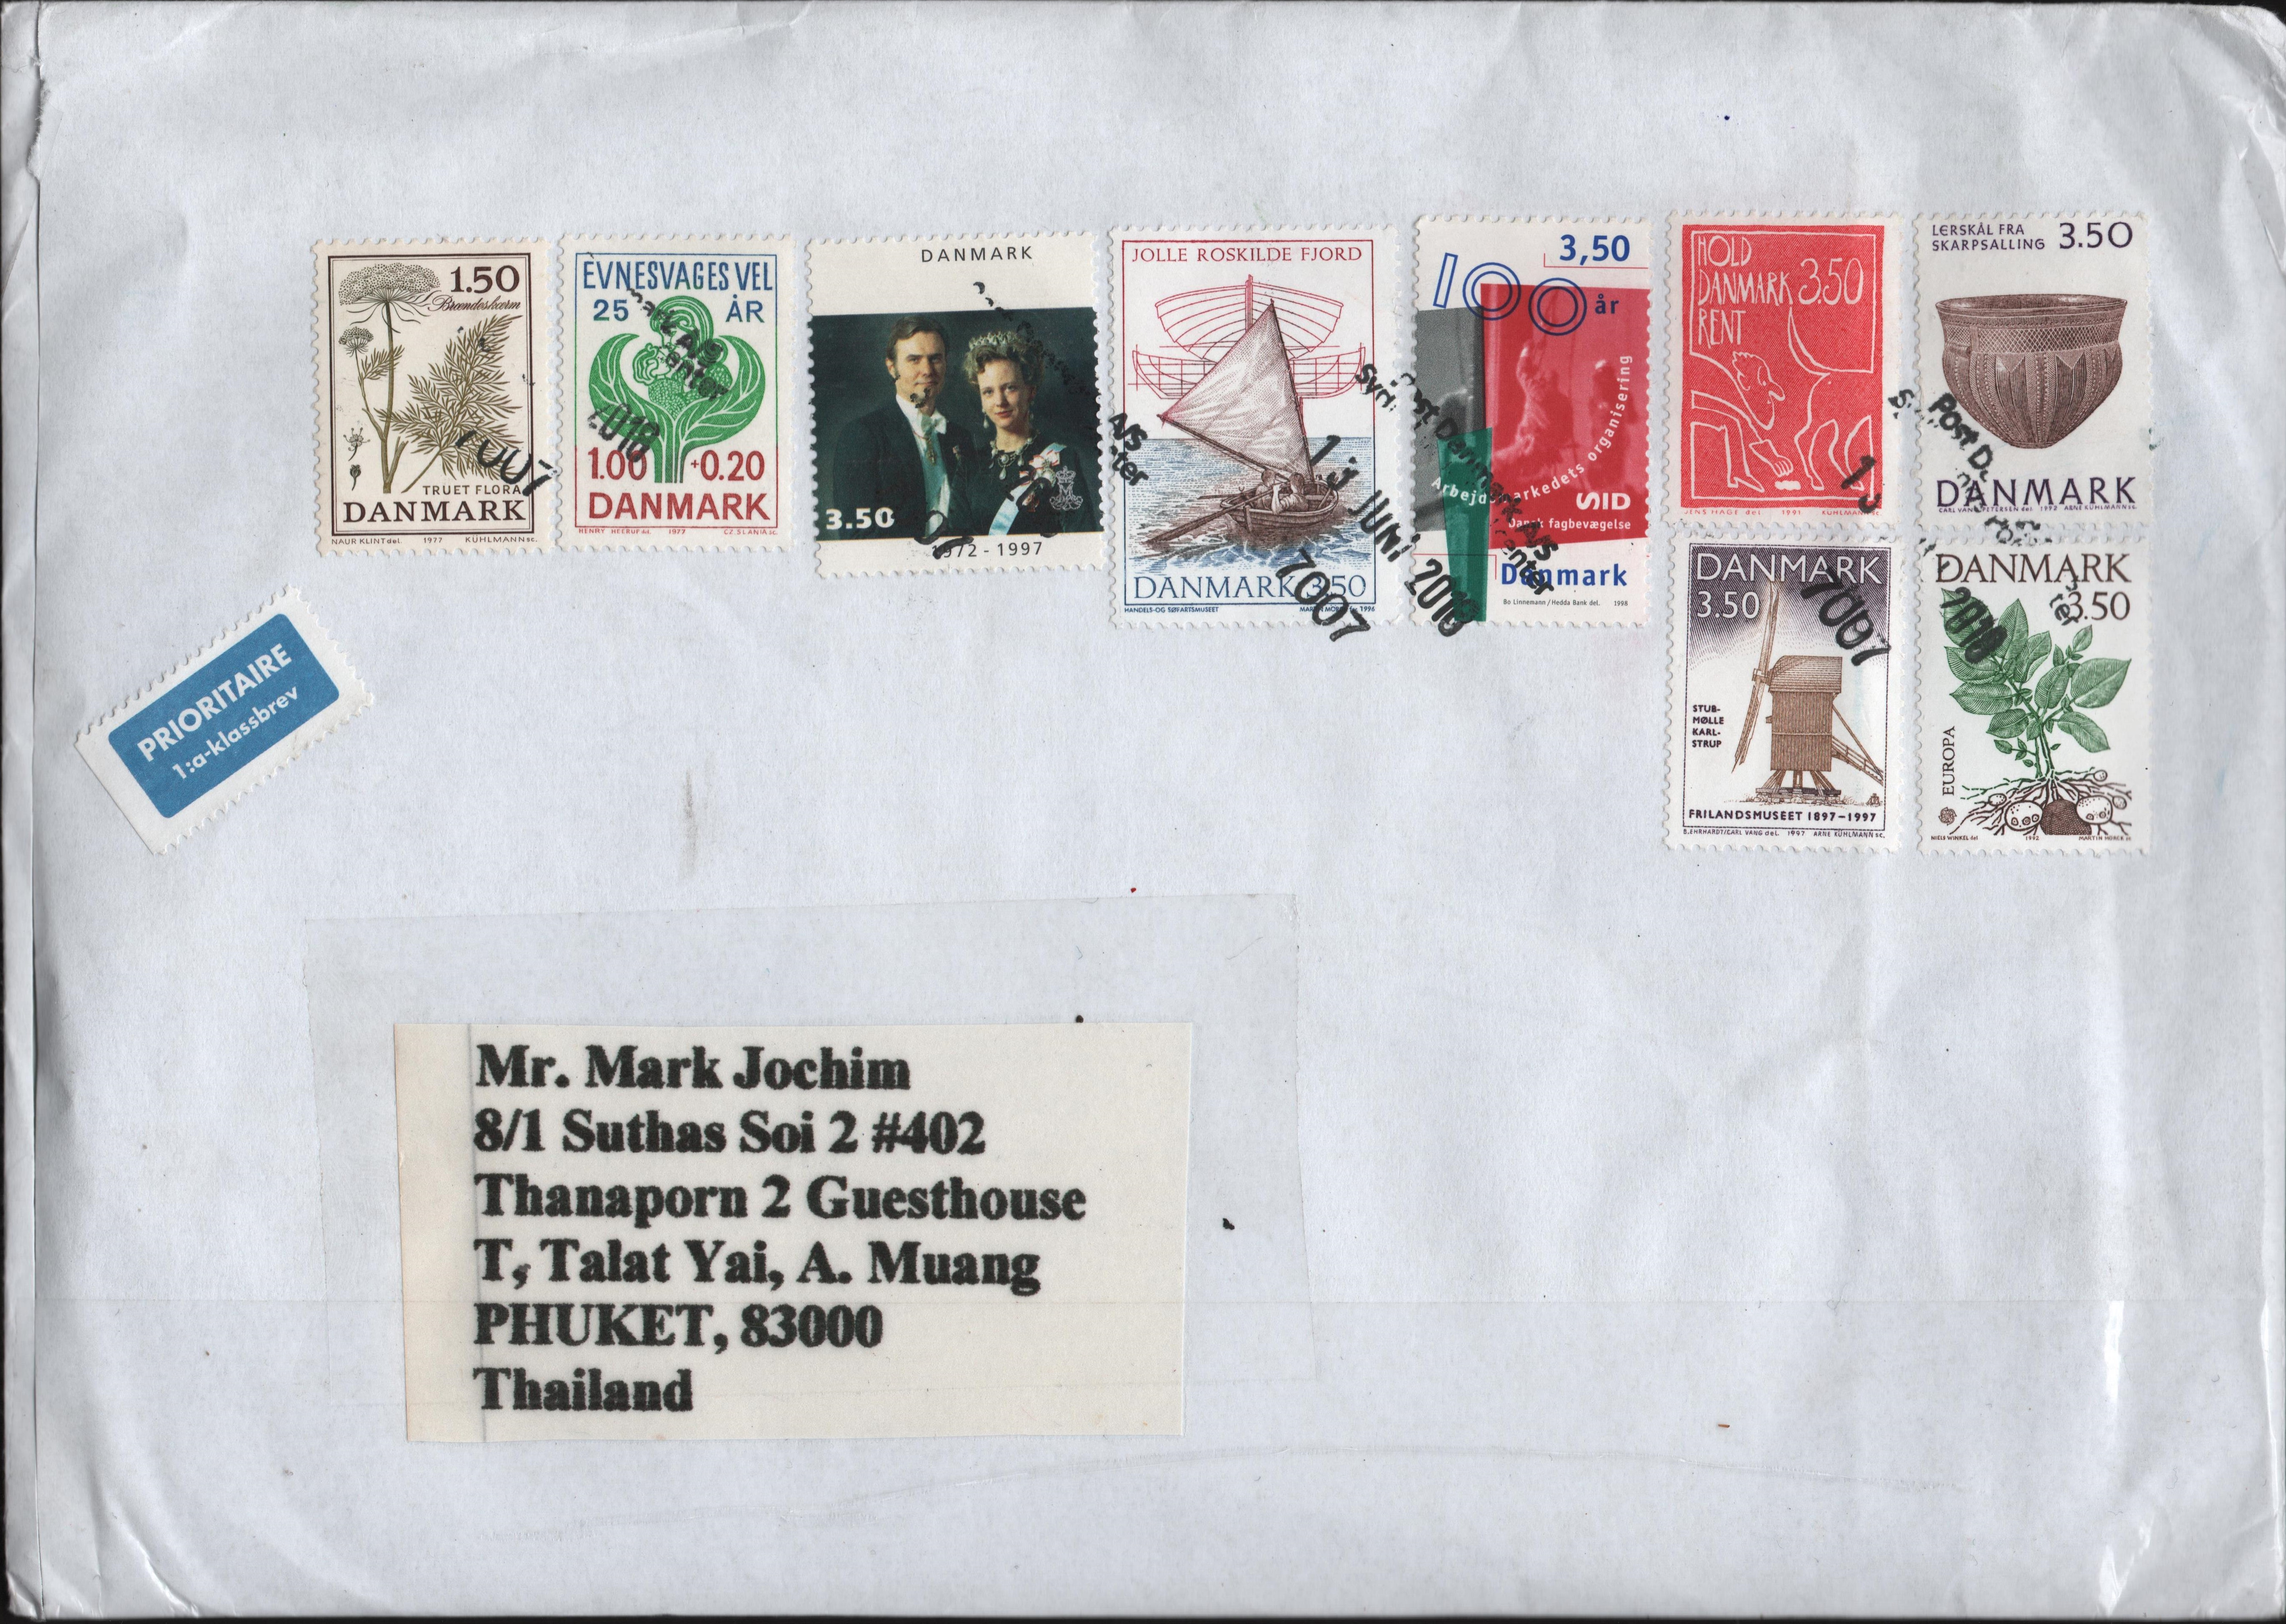 Packet mailed from Denmark to Thailand in June 2018 bearing nine Danish stamps including Scott #1067.